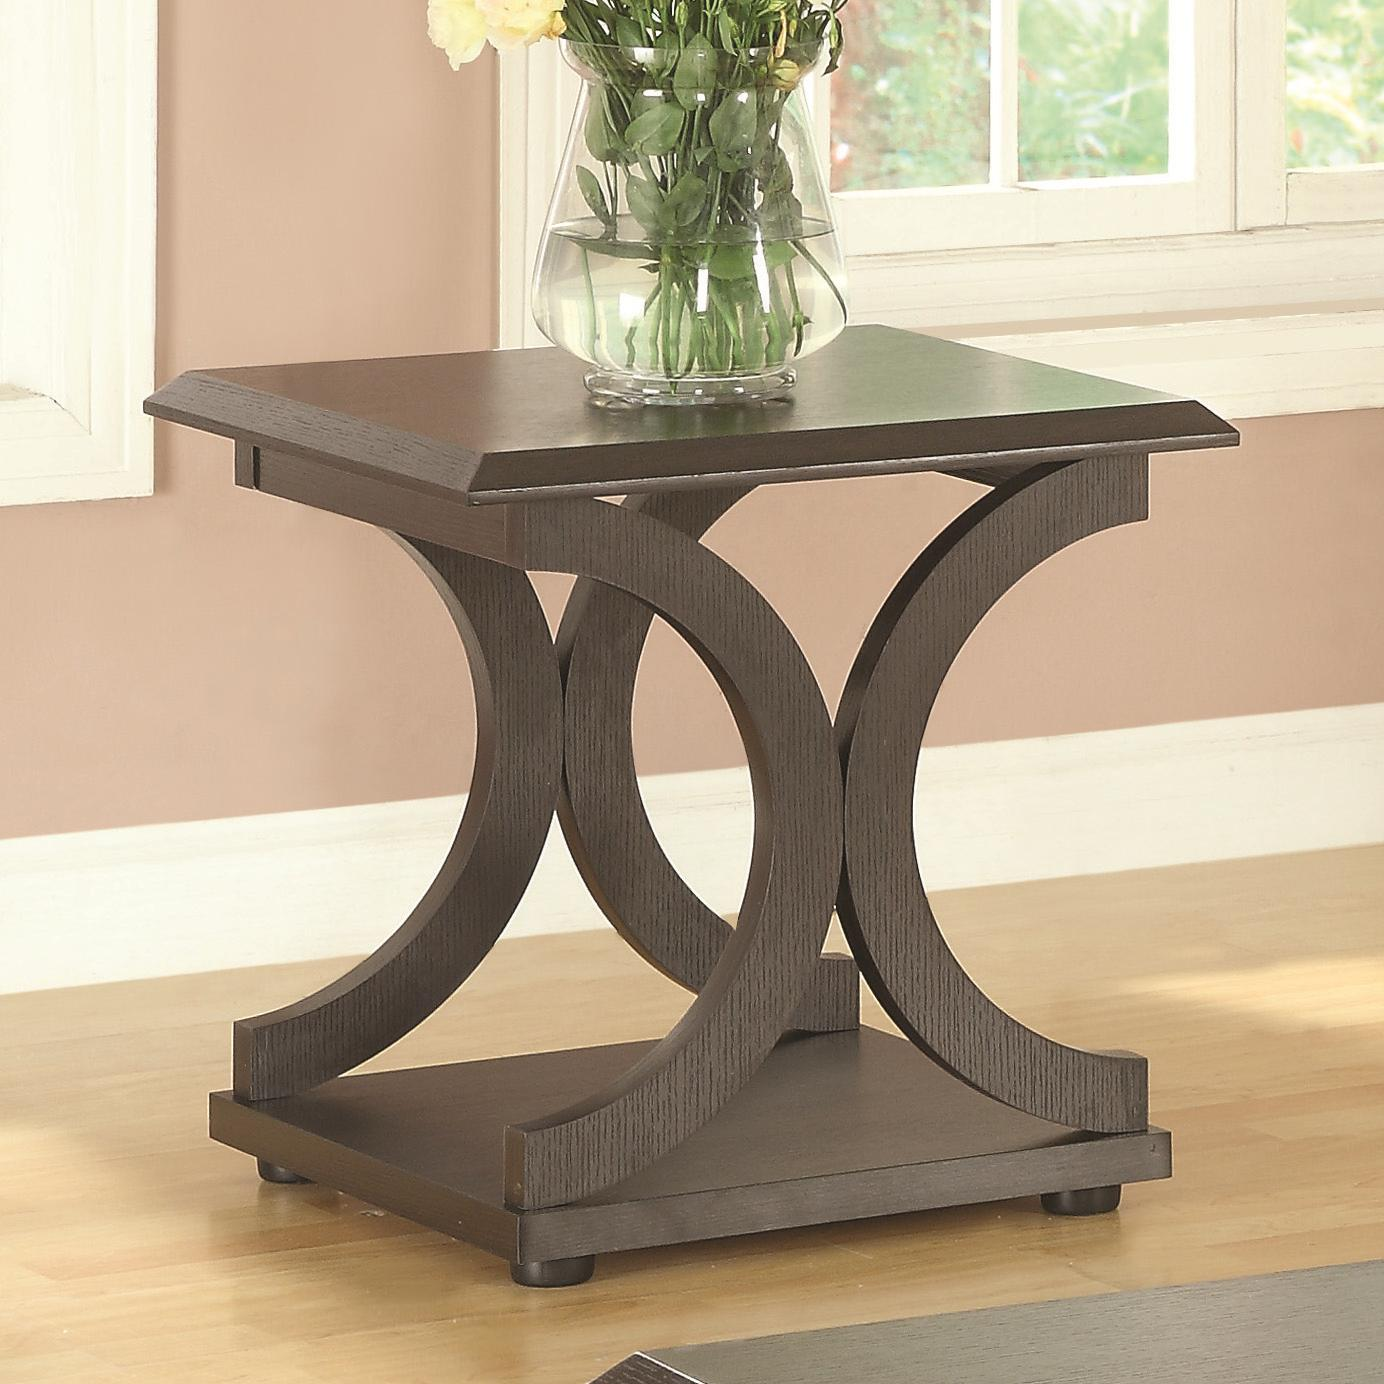 703140 End Table by Coaster at Dream Home Interiors